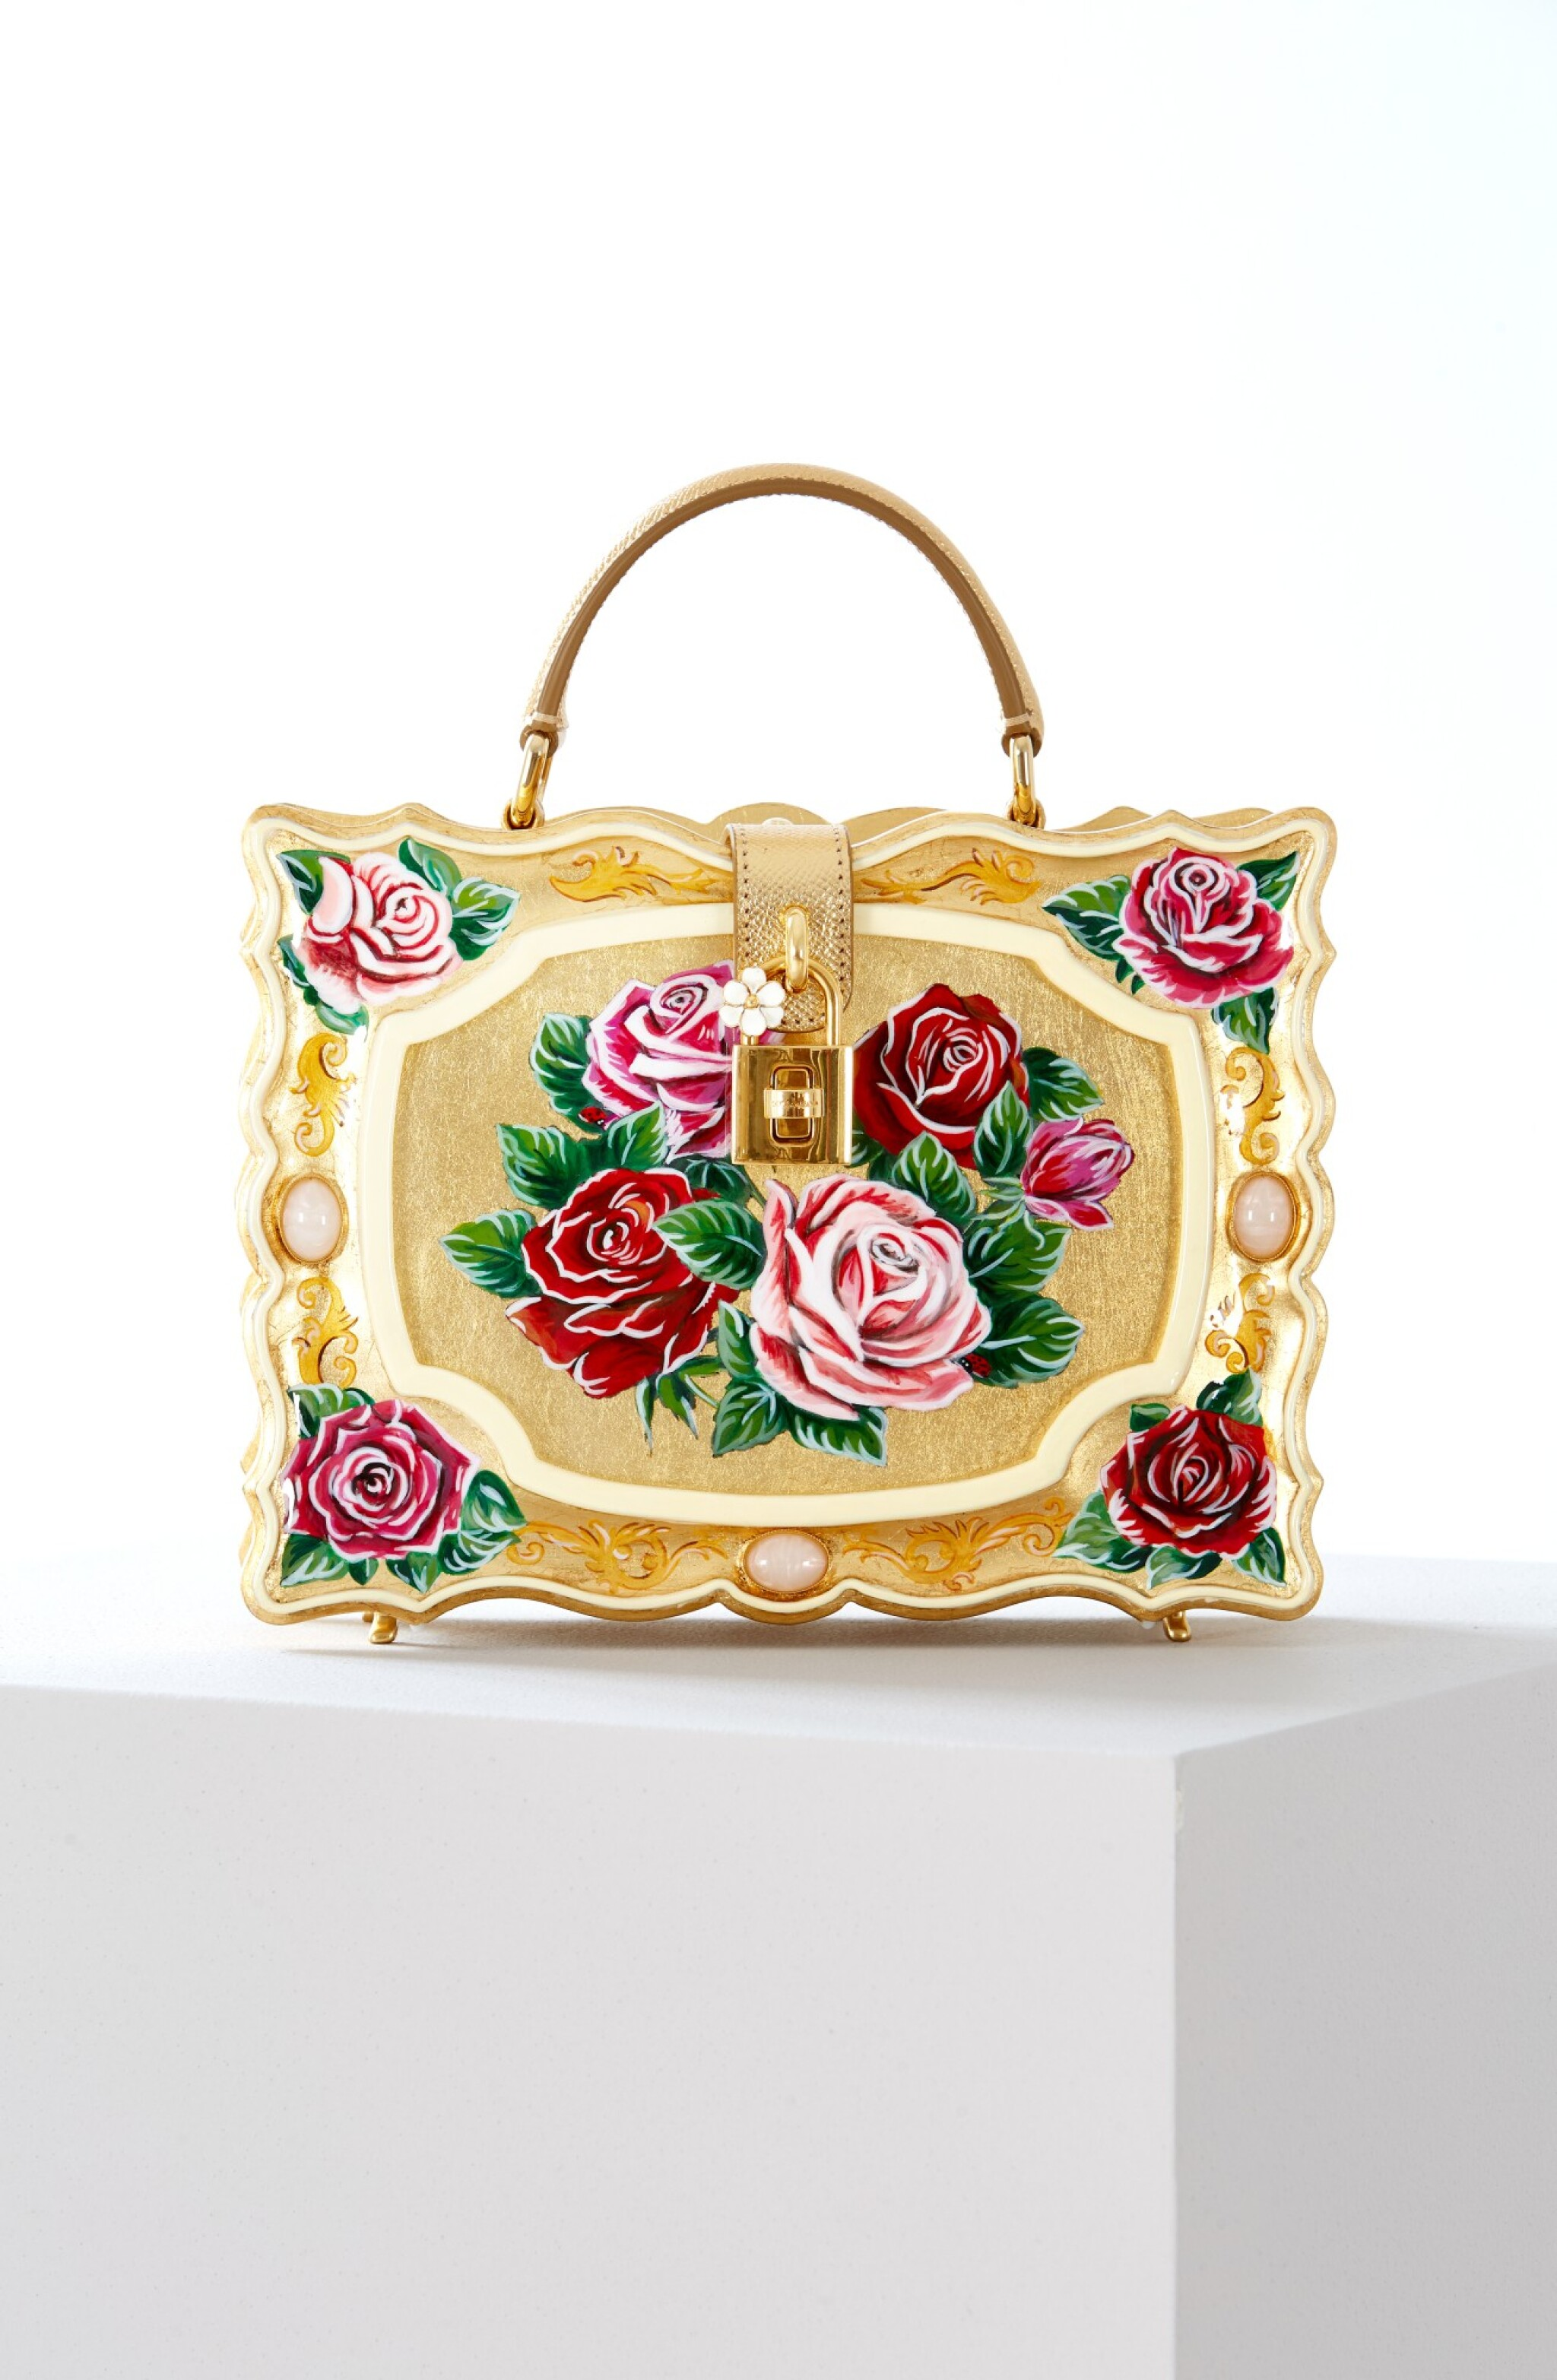 View 1 of Lot 43. Enamel Flower Embellished Limited Edition Box Bag in Golden Hand-Painted Wood with Vintage Plated Brass Hardware, Spring/Summer 2021.